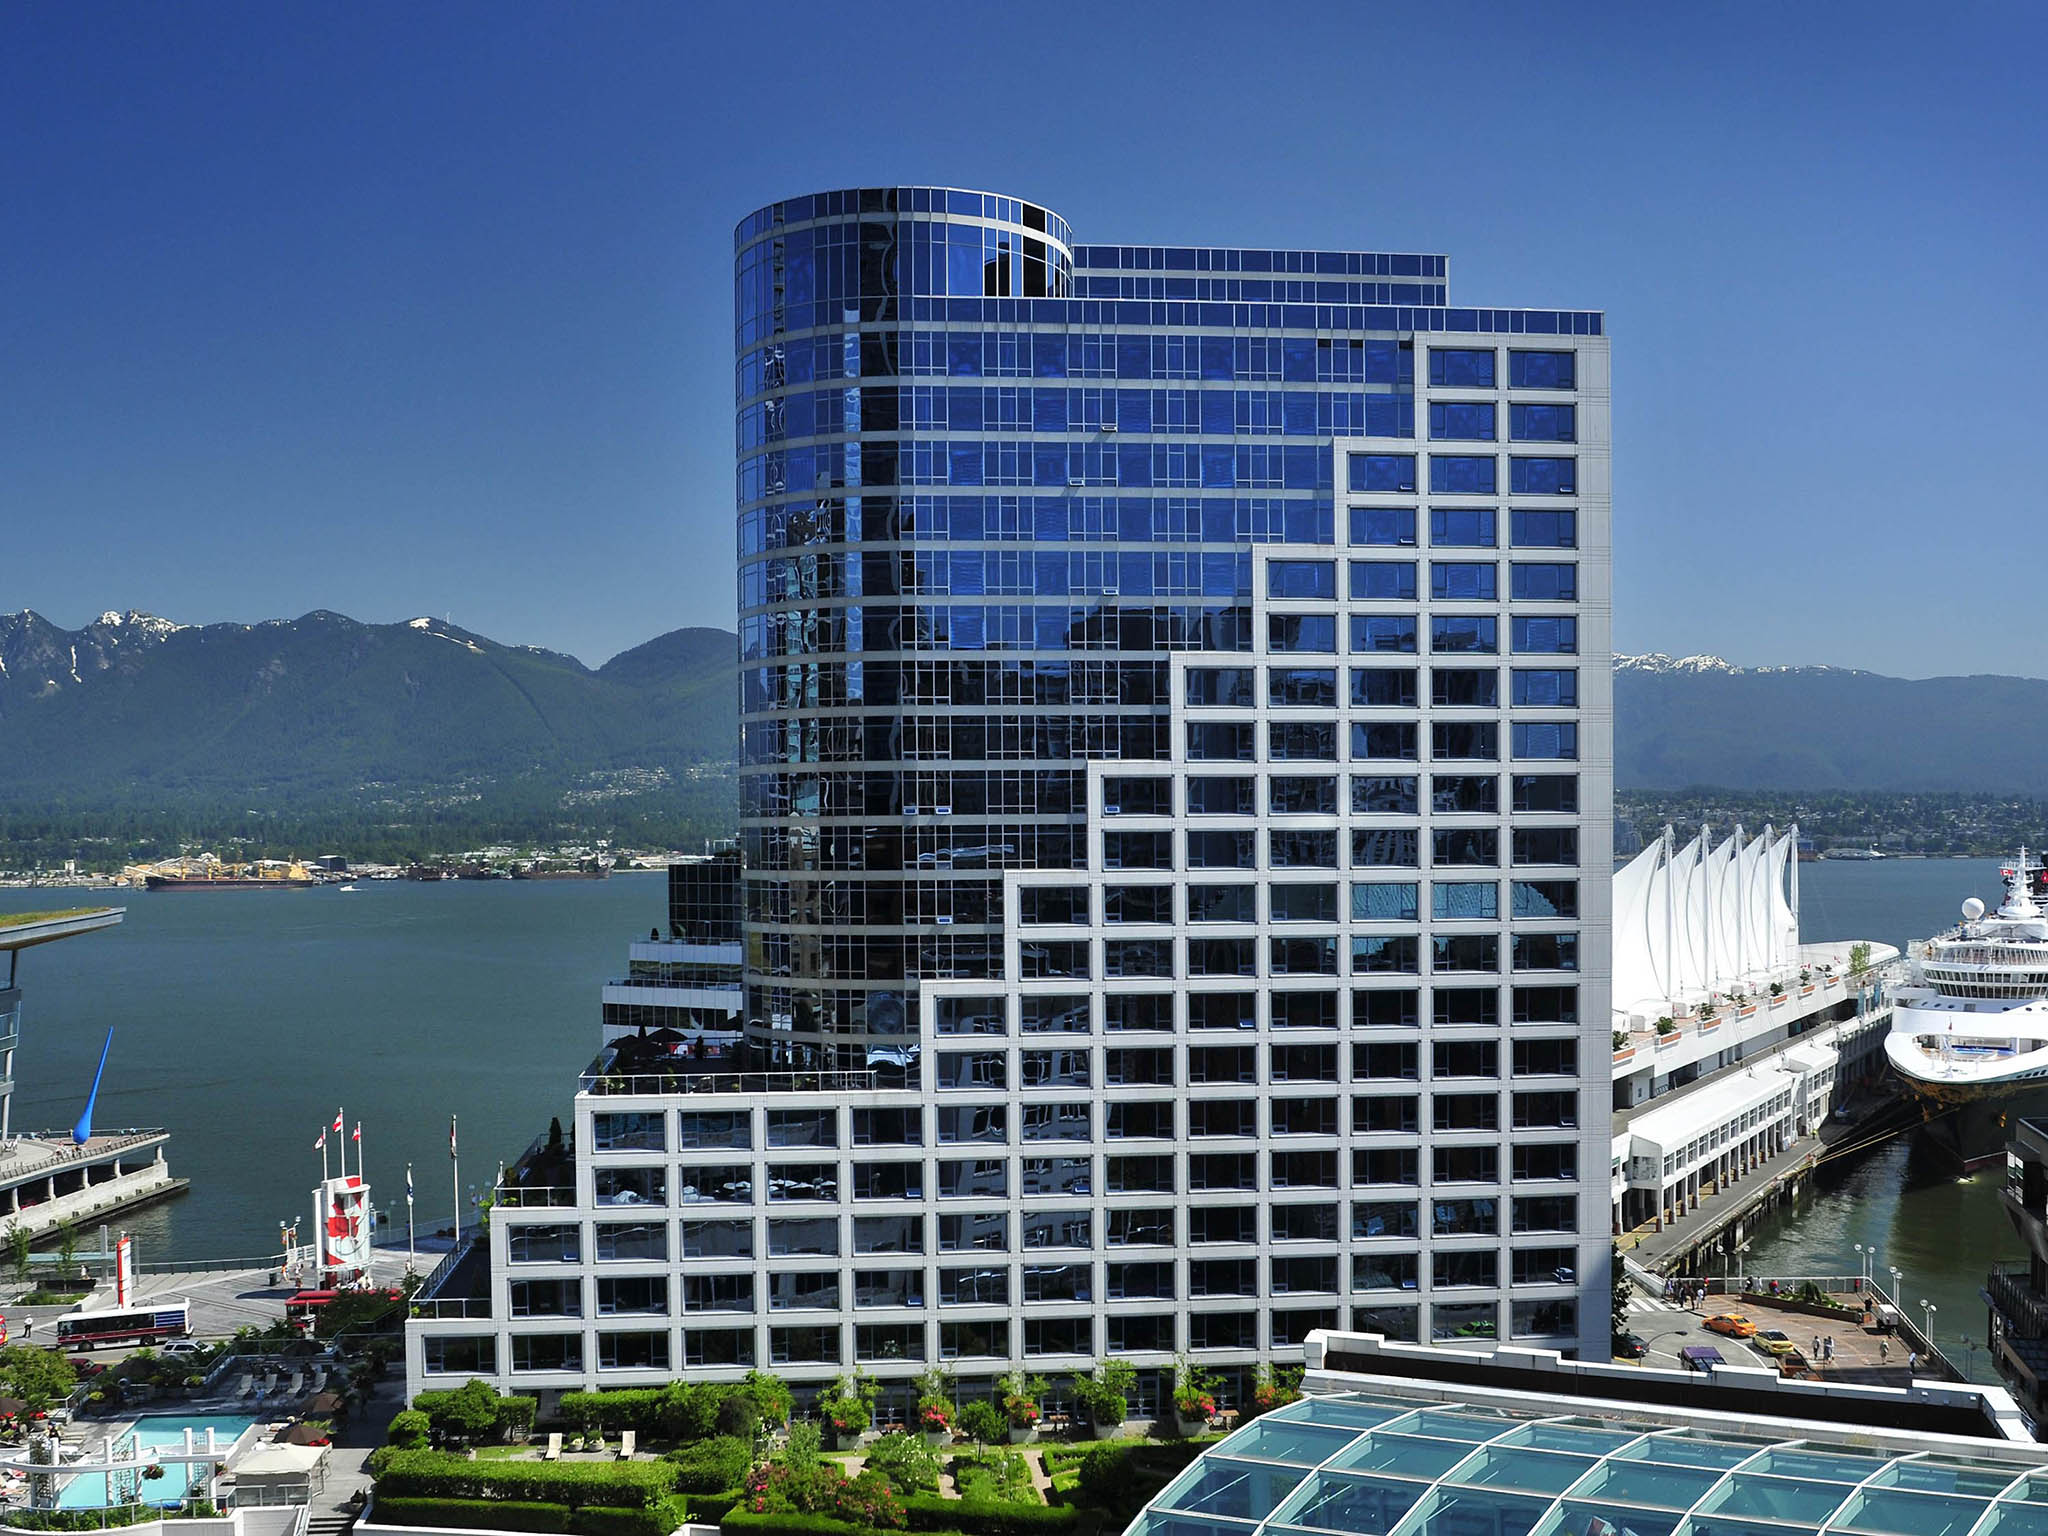 酒店 – Fairmont Waterfront 酒店